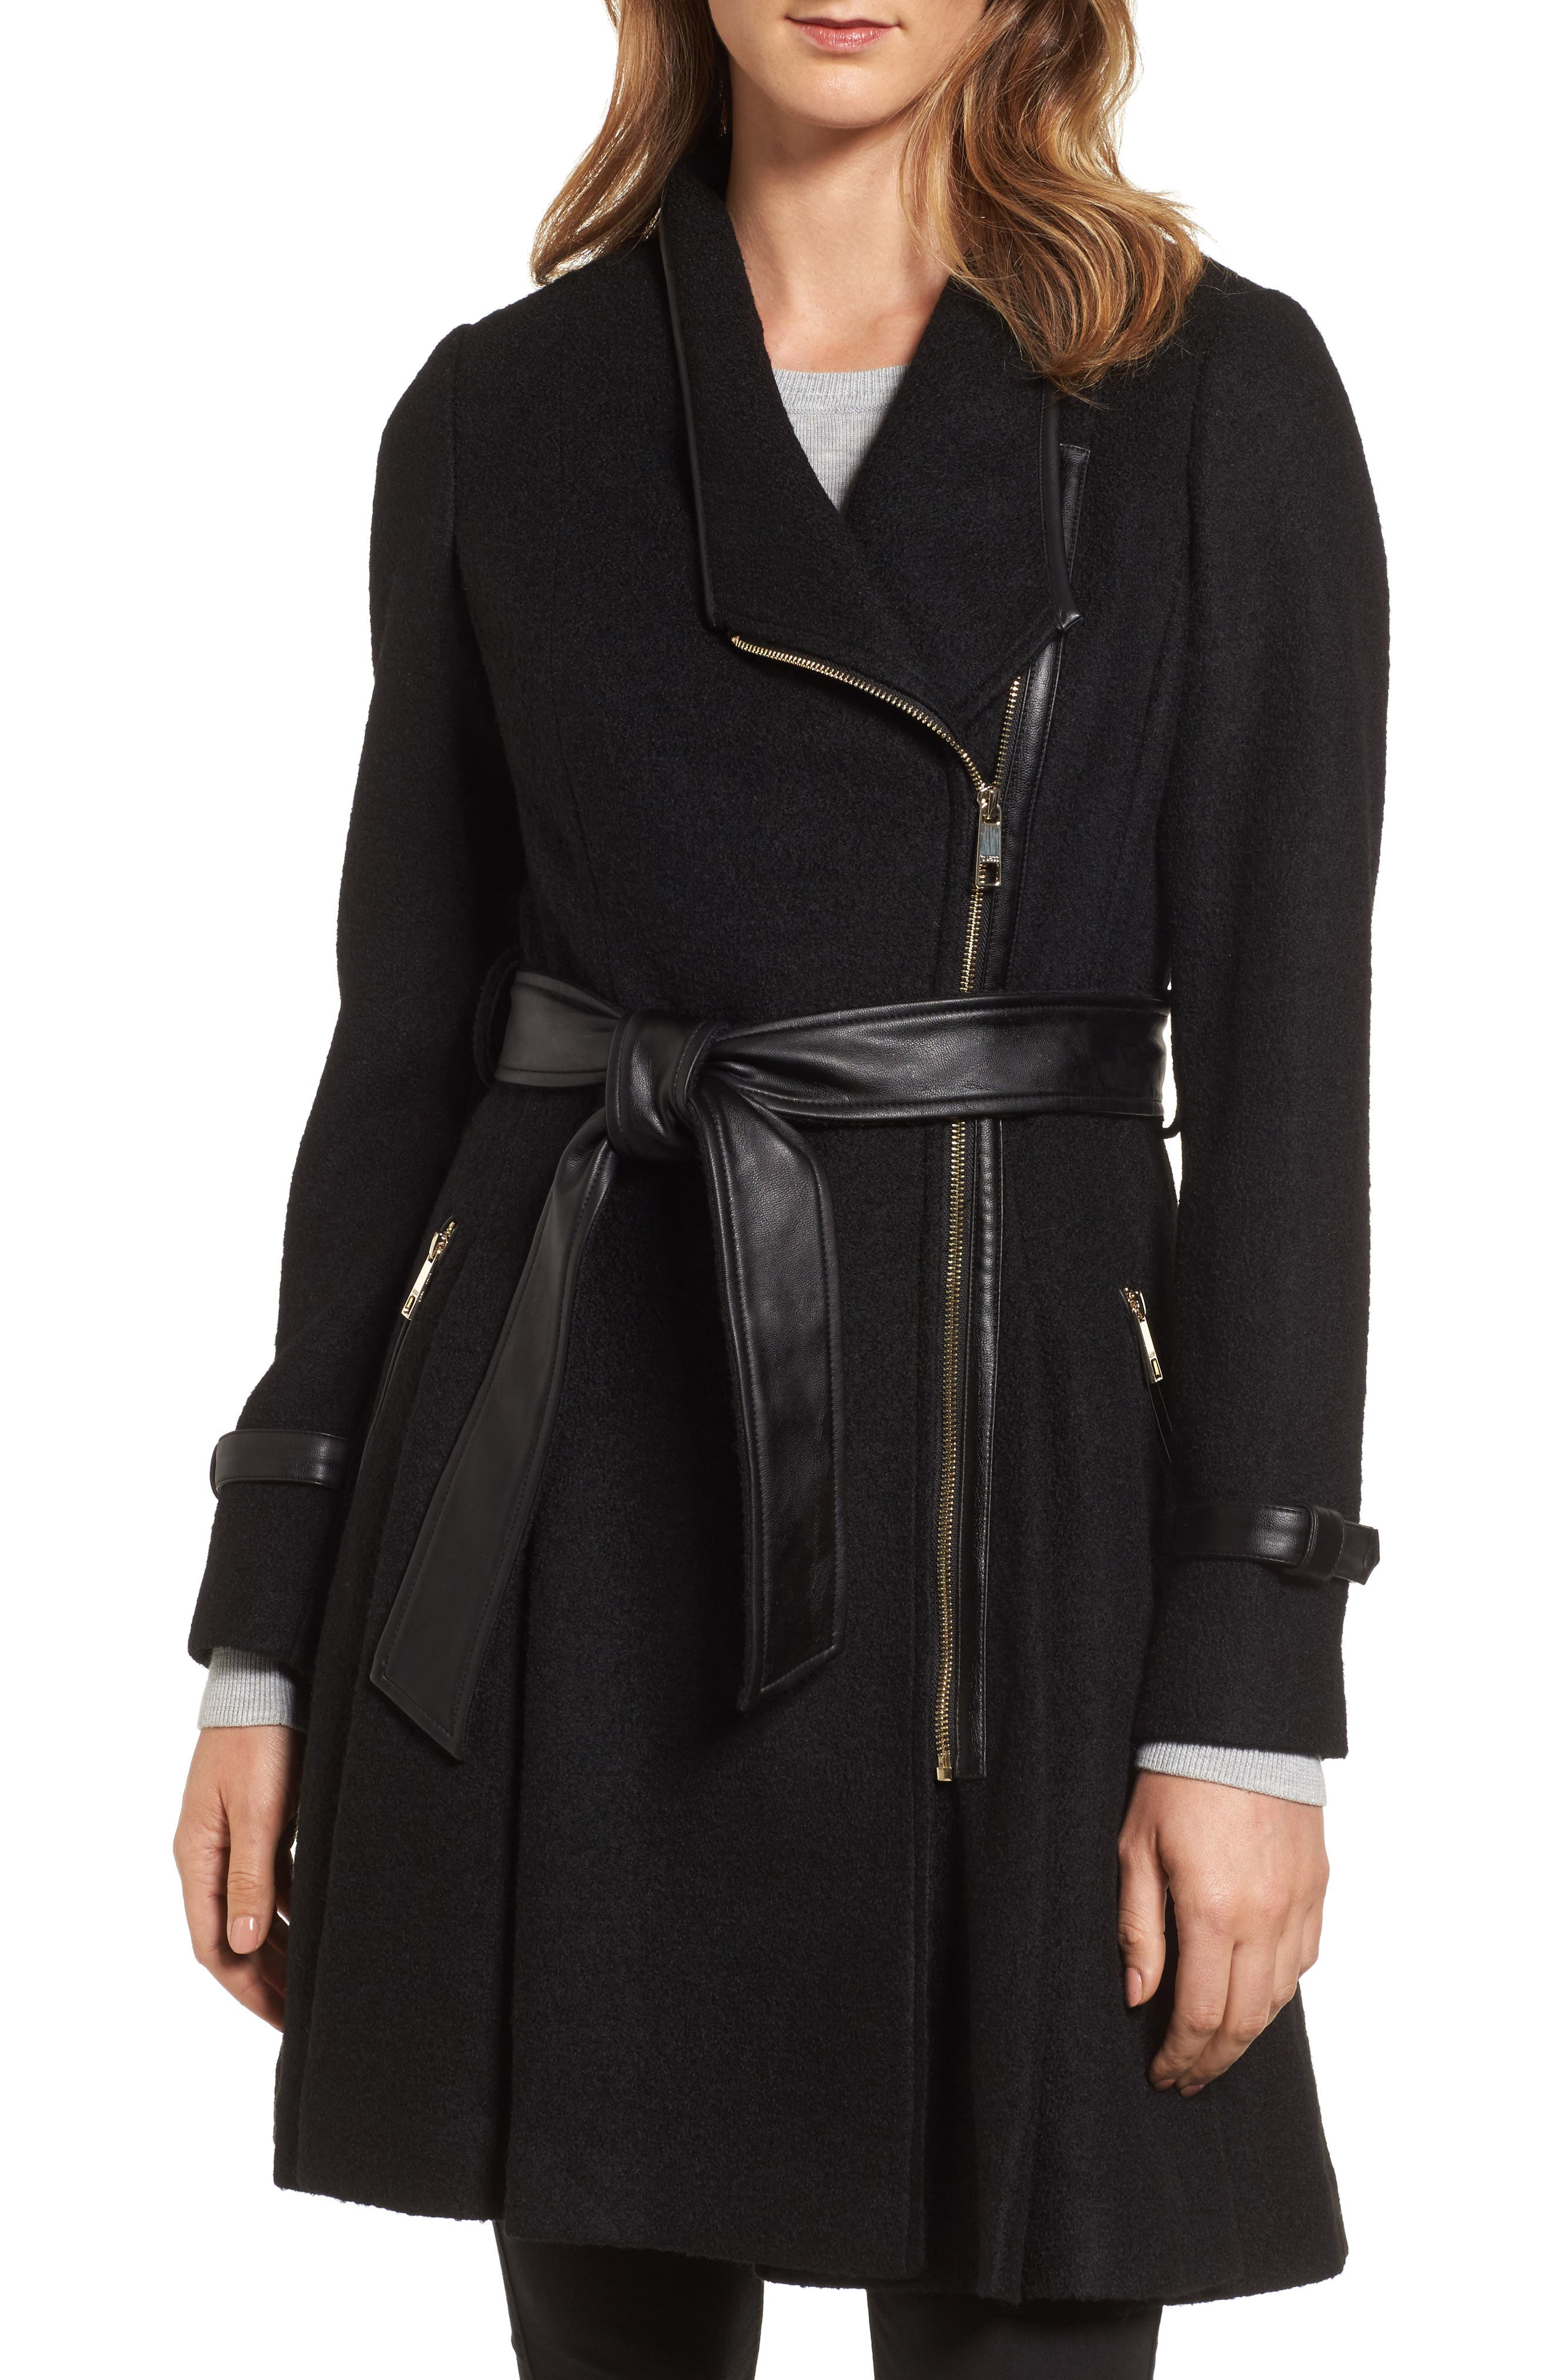 GUESS Belted Boiled Wool Blend Coat